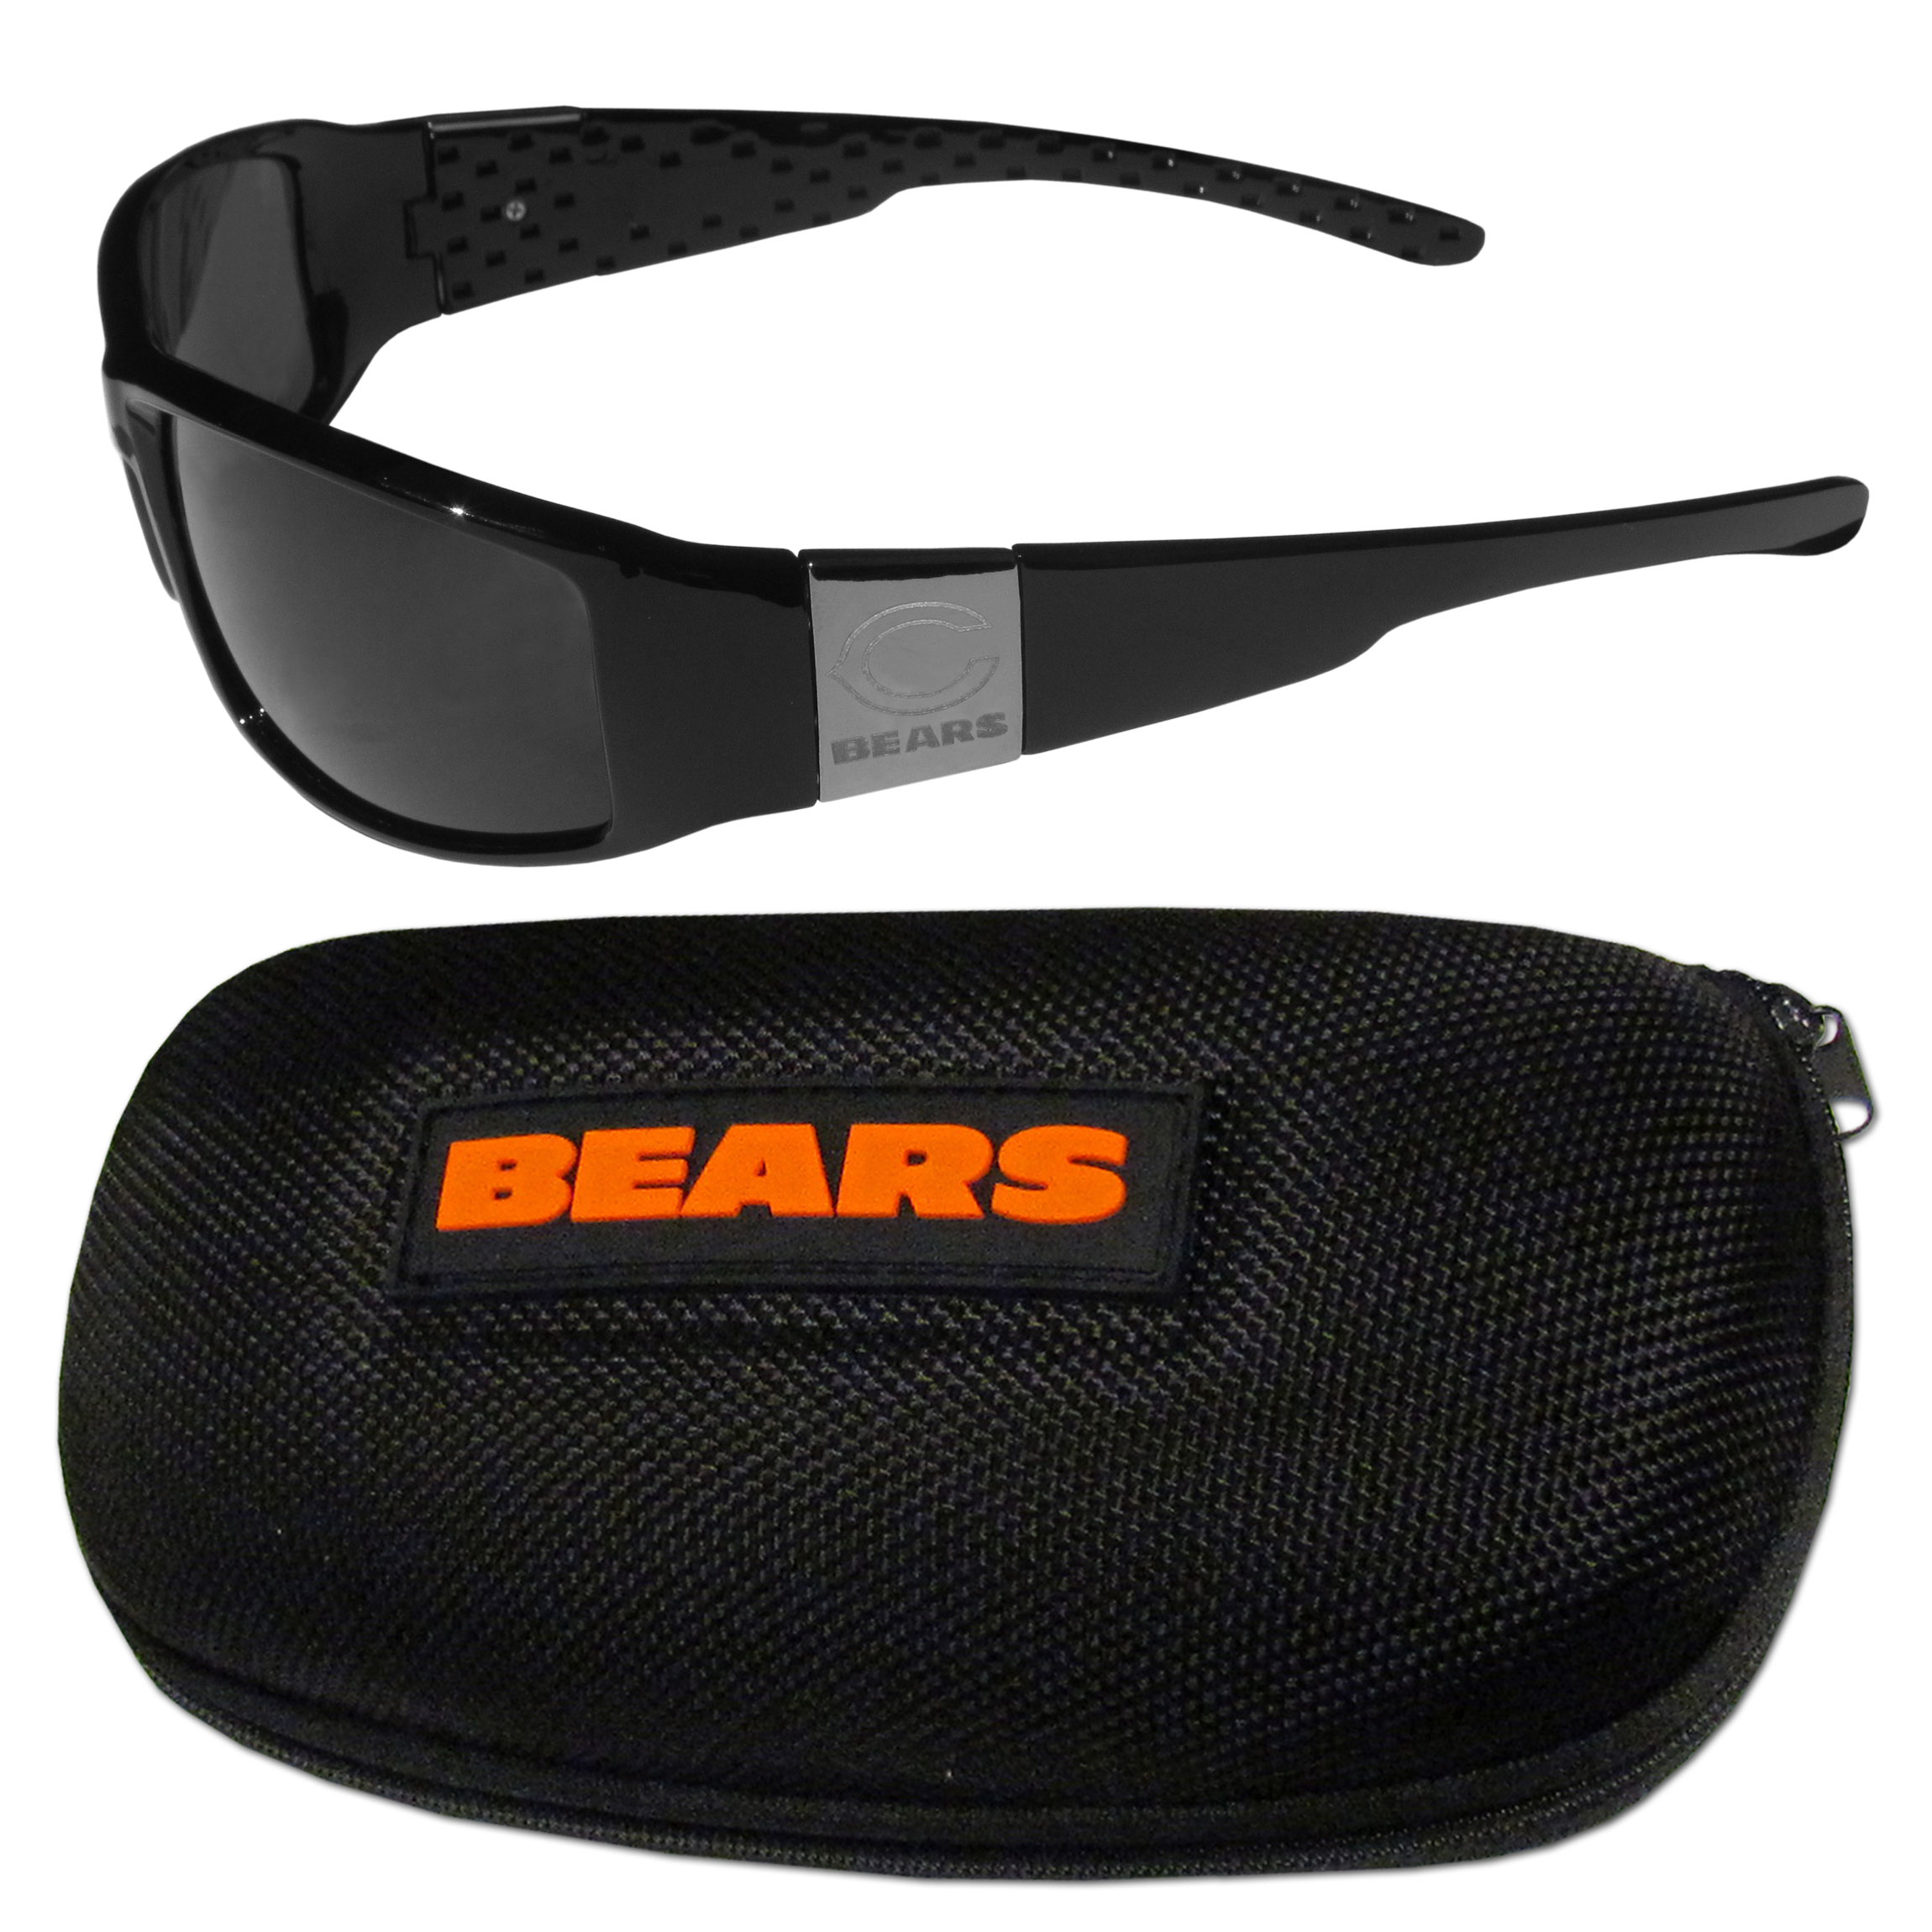 Chicago Bears Chrome Wrap Sunglasses and Zippered Carrying Case - This set includes our sleek and stylish Chicago Bears chrome wrap sunglasses and our hard shell, zippered carrying case. The sunglasses feature etched team logos on each arm and 100% UVA/UVB protection. The case features a large and colorful team emblem.